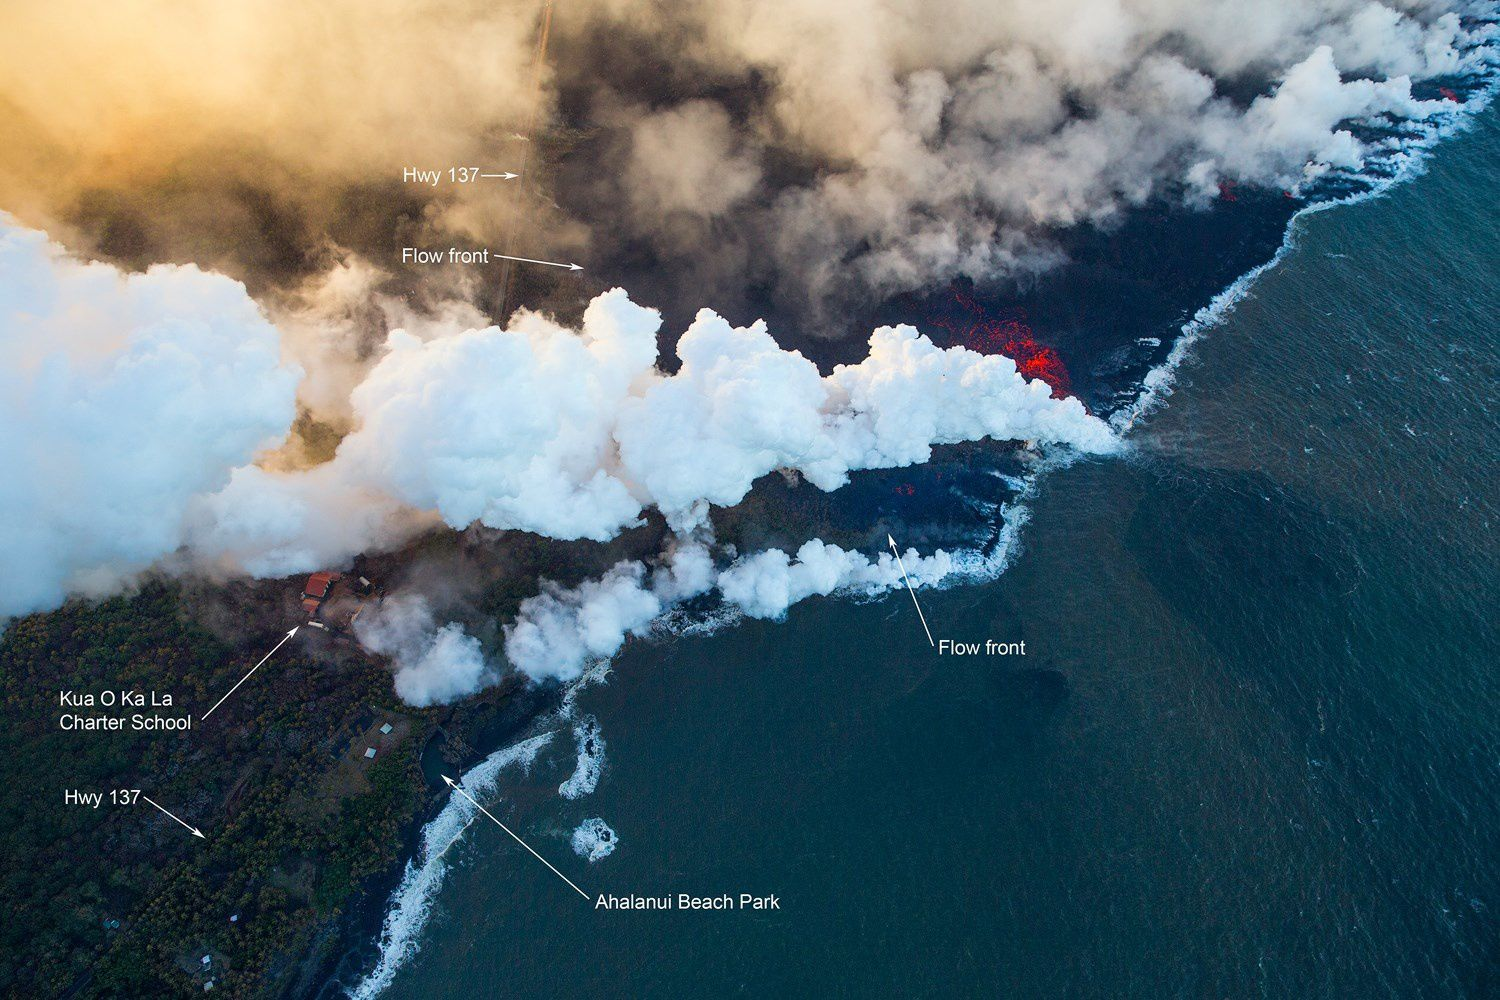 Kilauea's east rift zone overflight: Lava was approximately 150 yards from Ahalanui Beach Park, also known as the Warm Ponds, and the Kua O Ka La Charter School. - photo extreme exposure